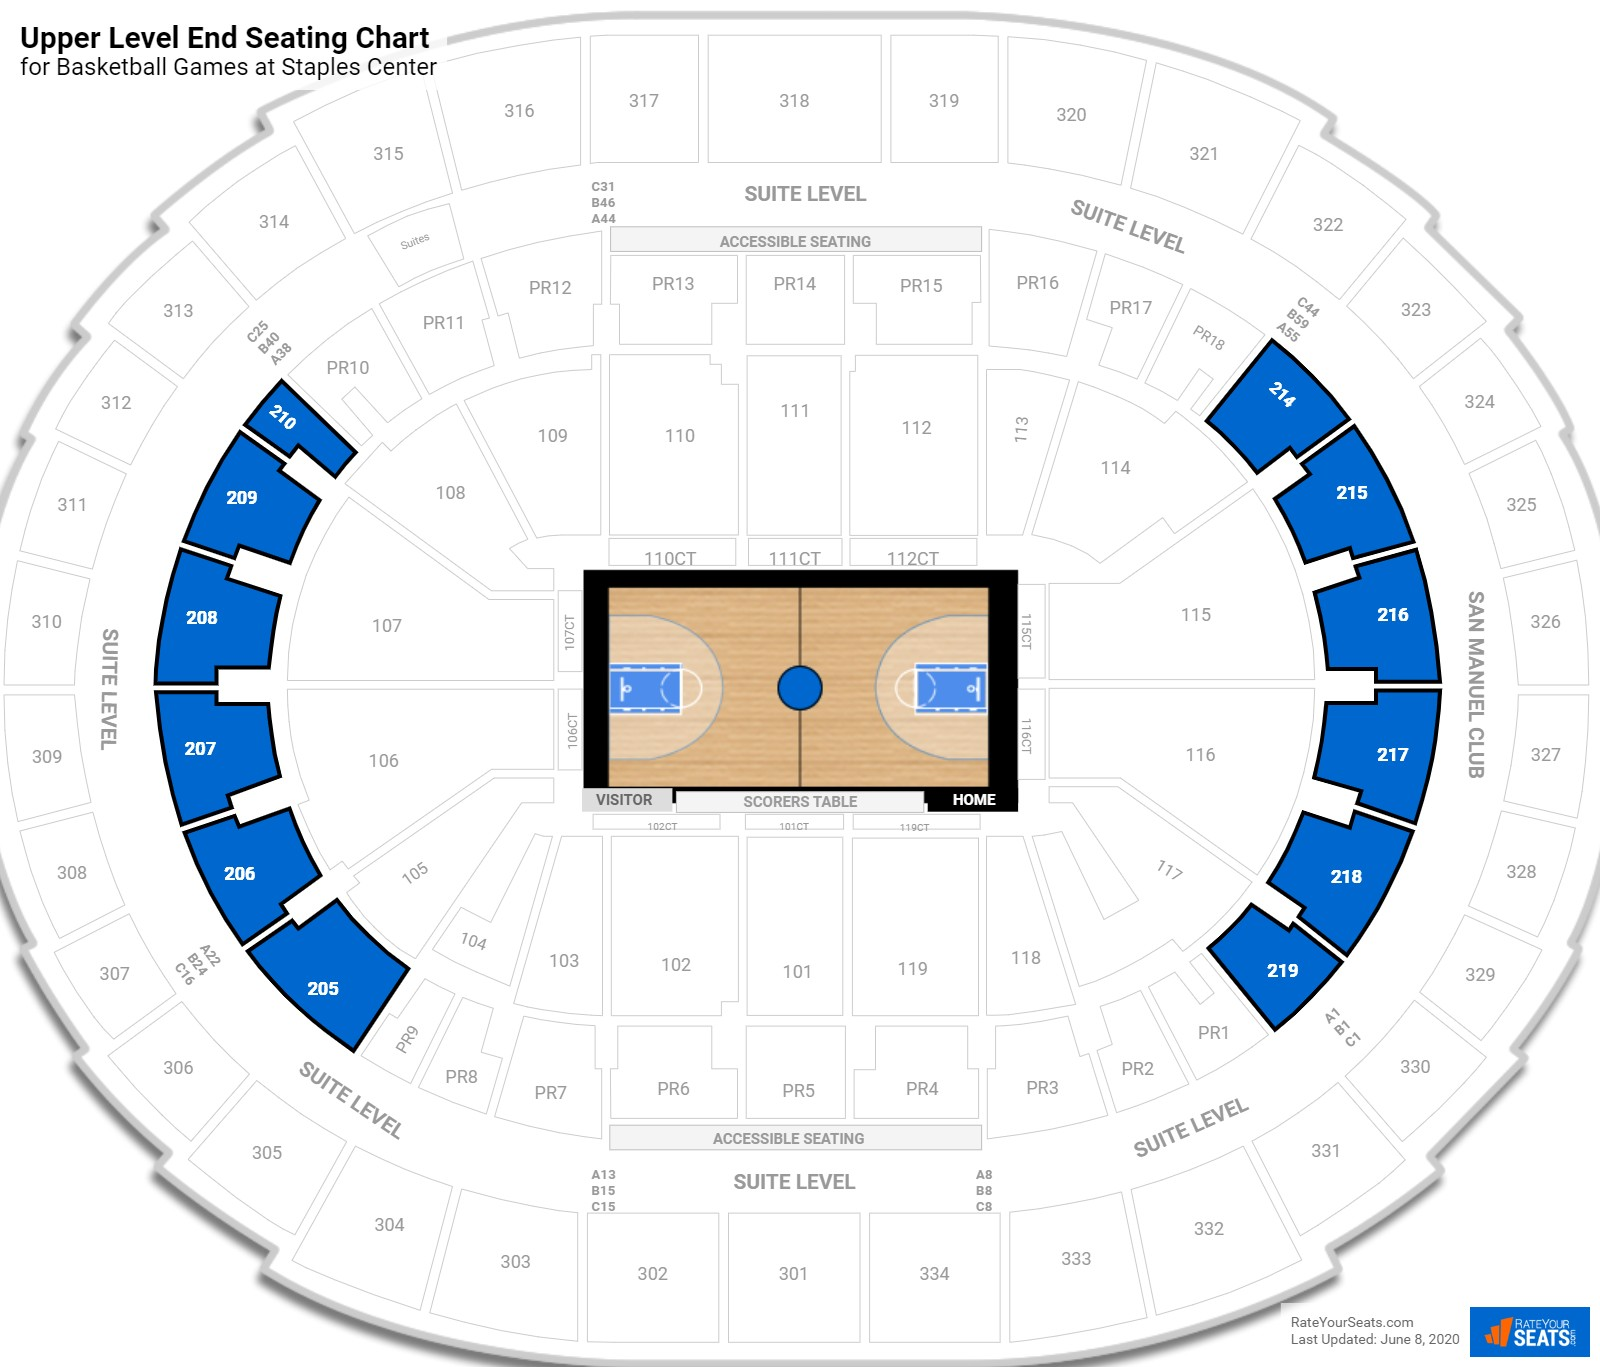 Staples Center 200 Level End seating chart